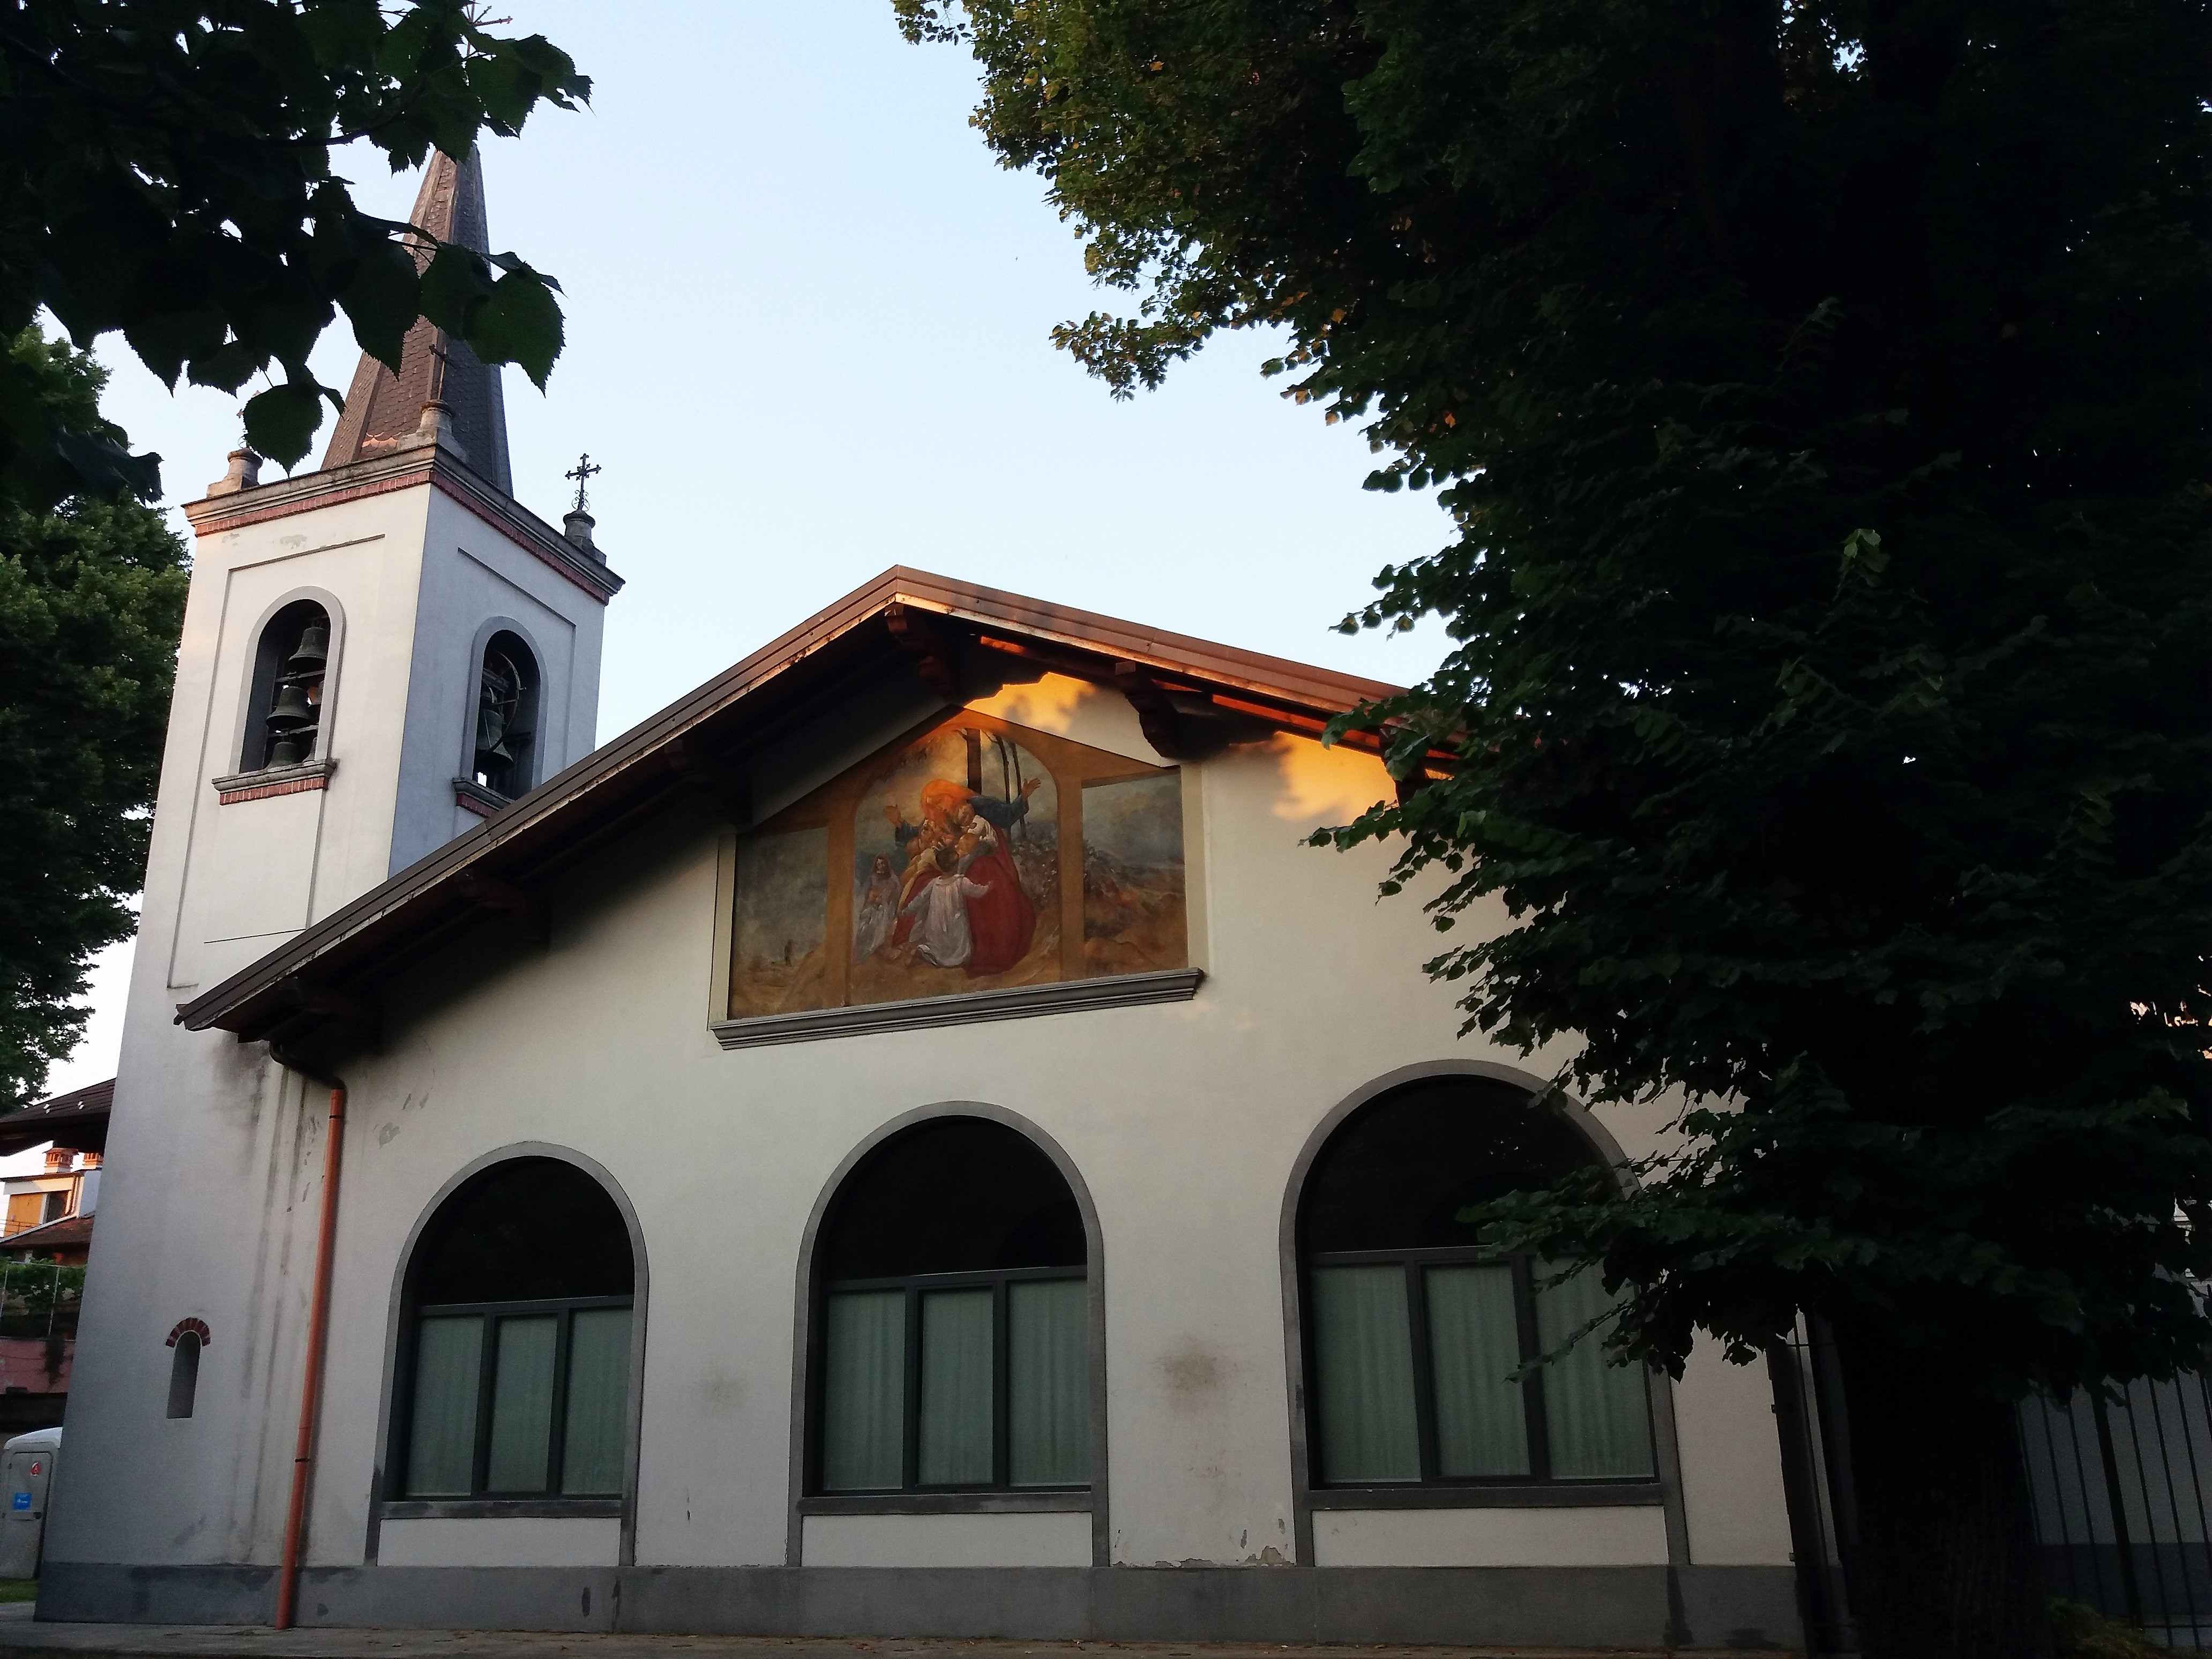 Chiesa nel Parco Trotter